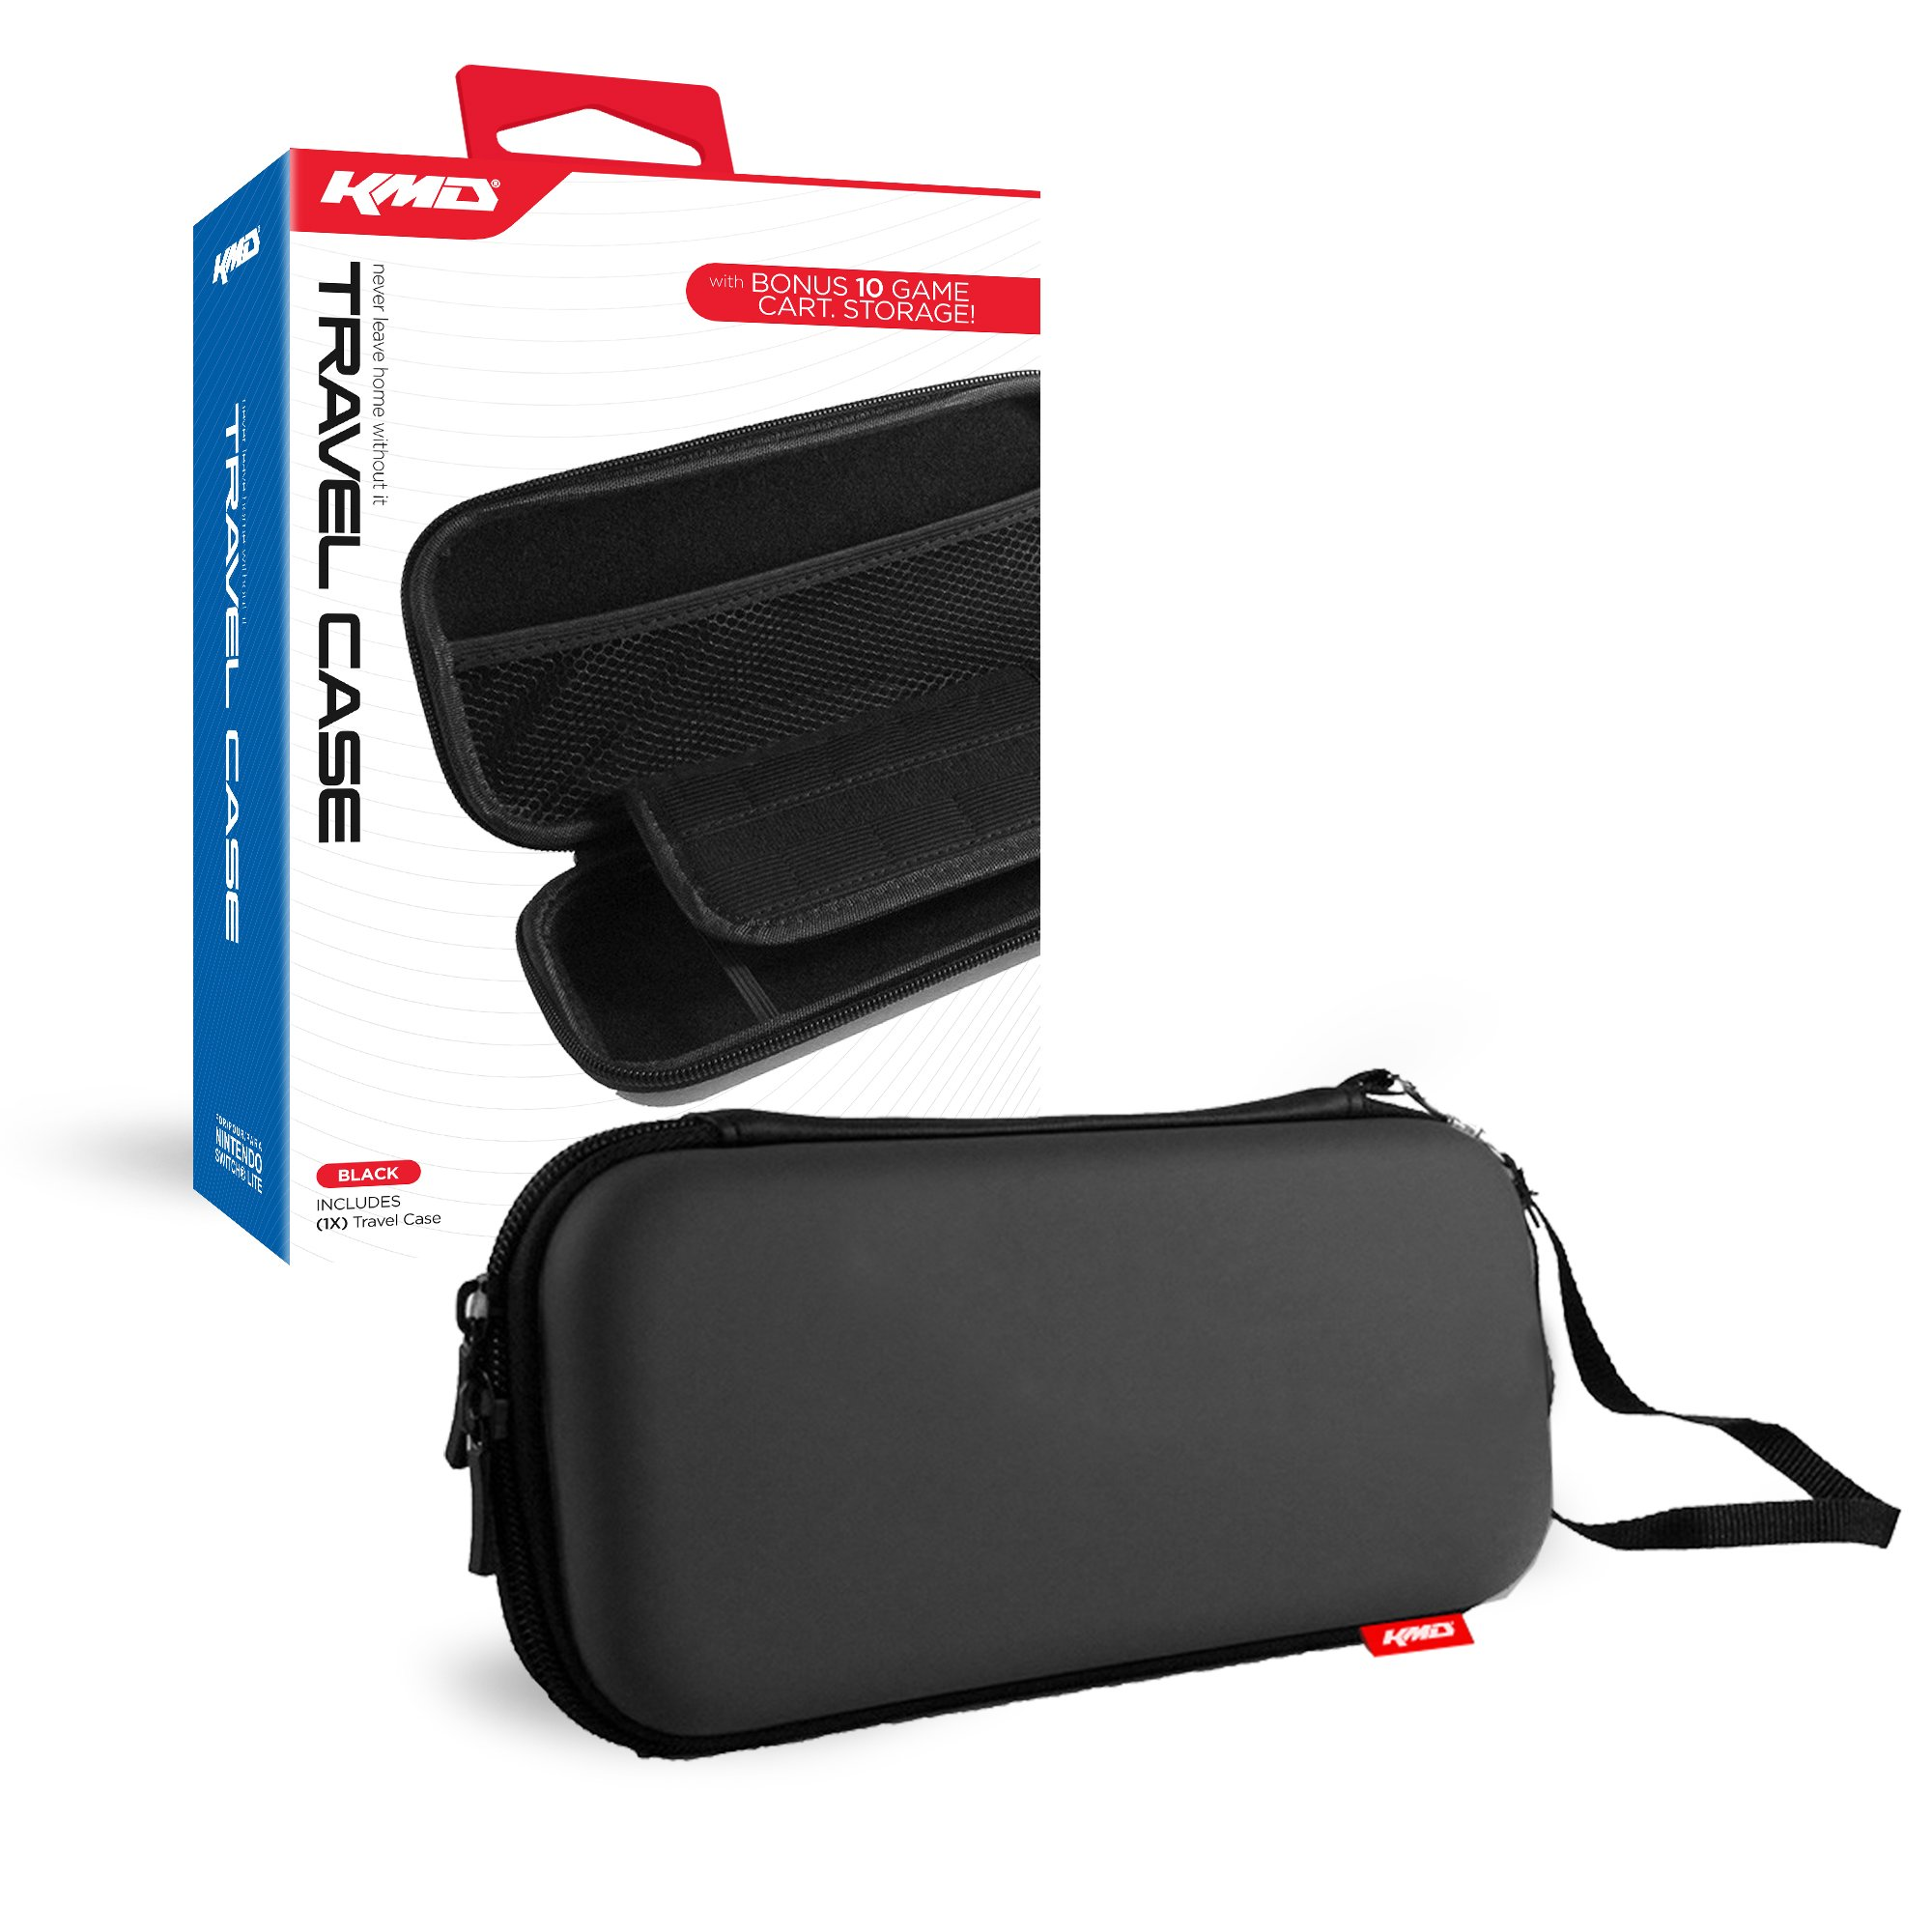 KMD Switch Lite Console Travel Case